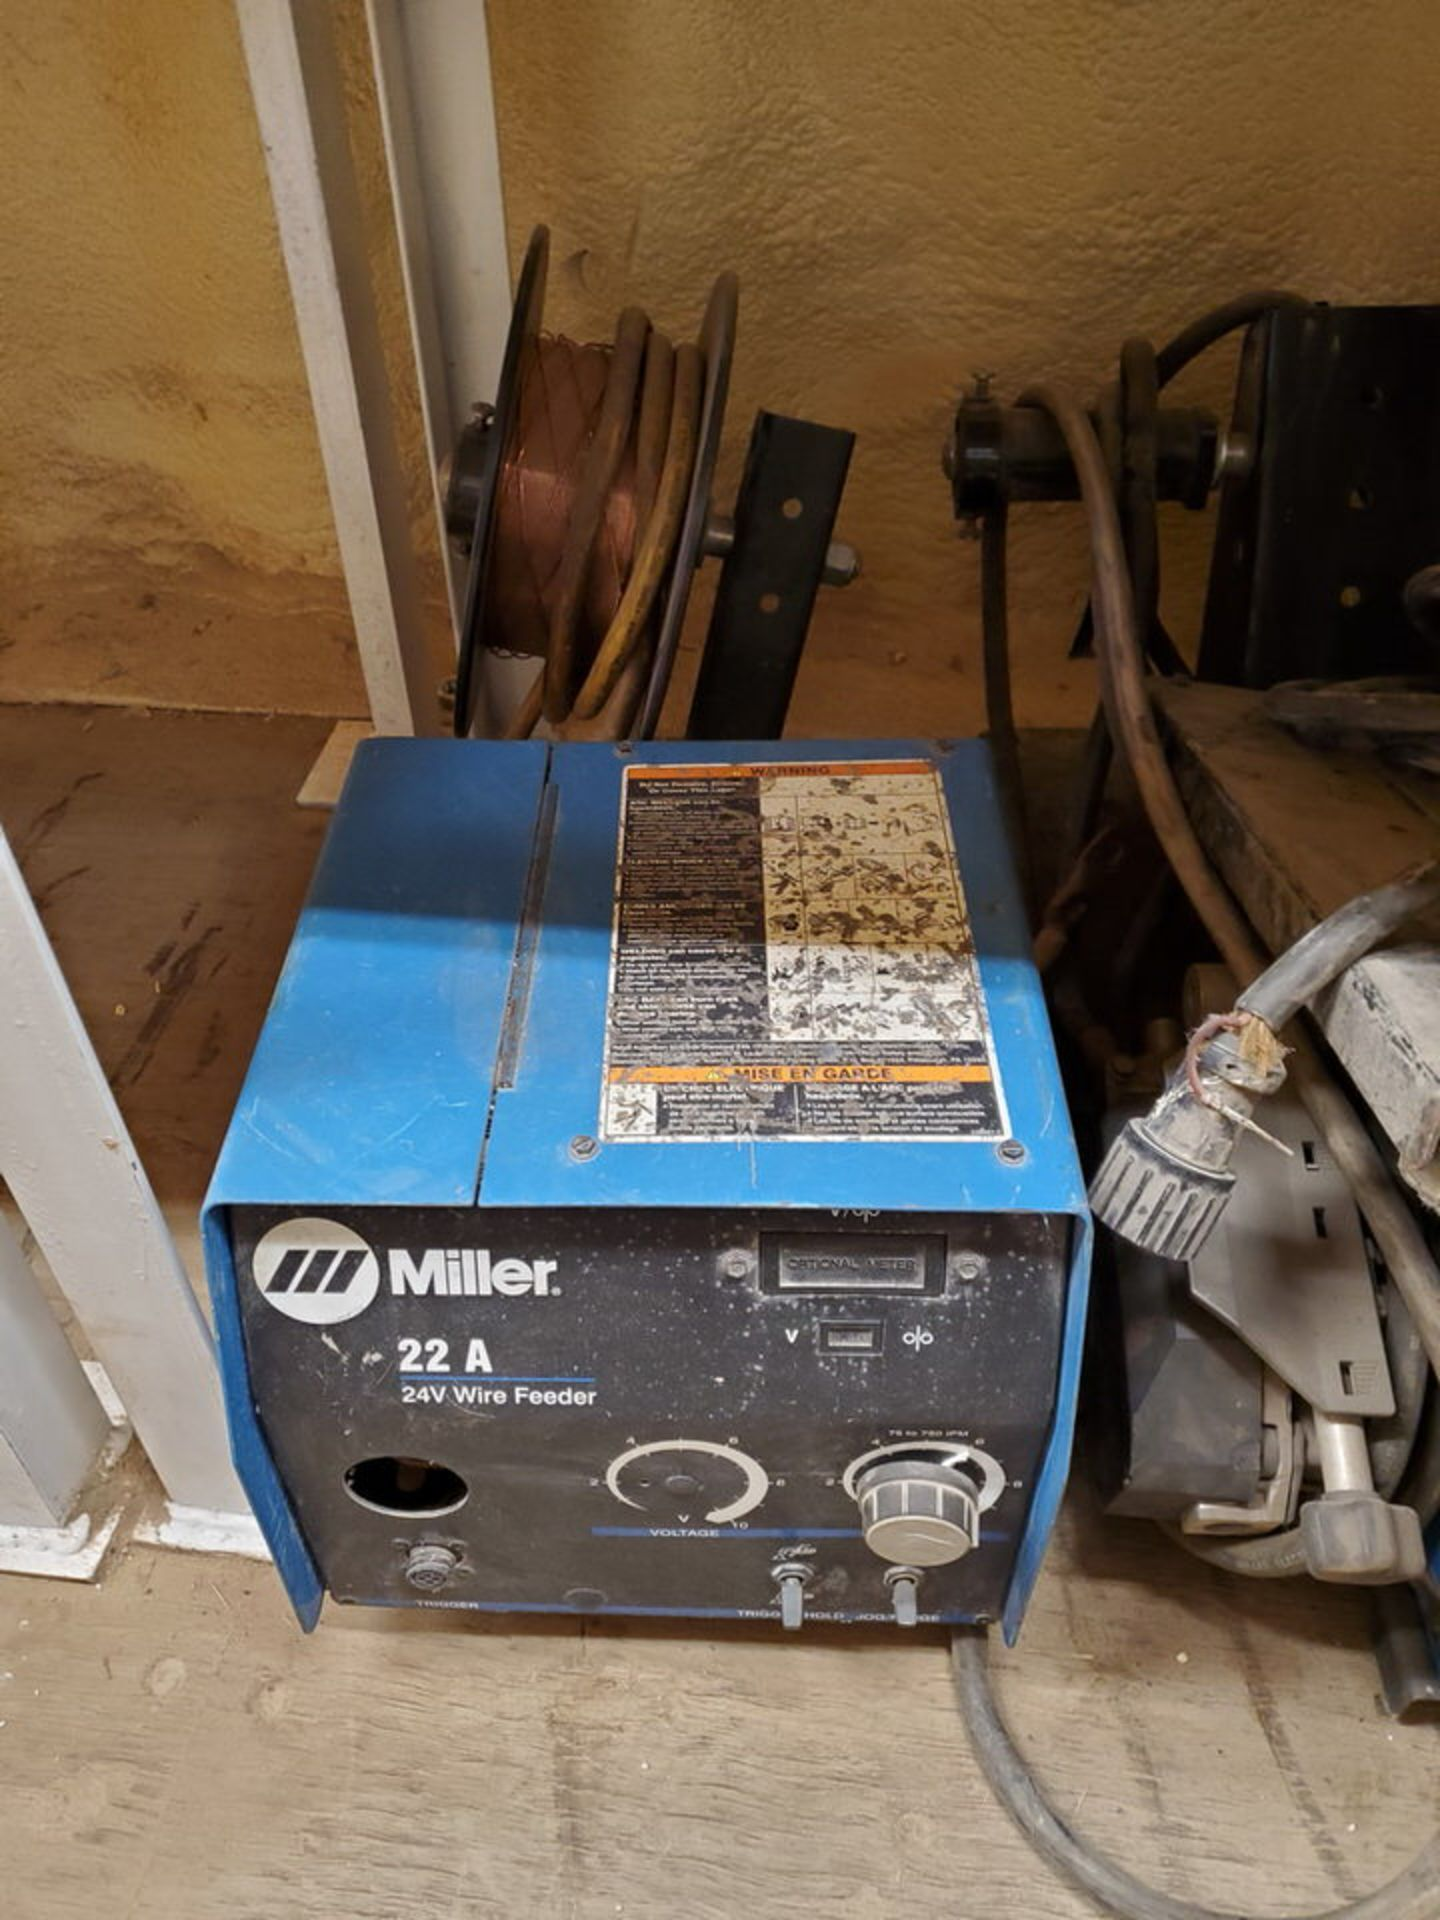 Miller 70 Series (9) 24V Wire Feeders W/ (1) 22A 24V Wire Feeder - Image 6 of 6